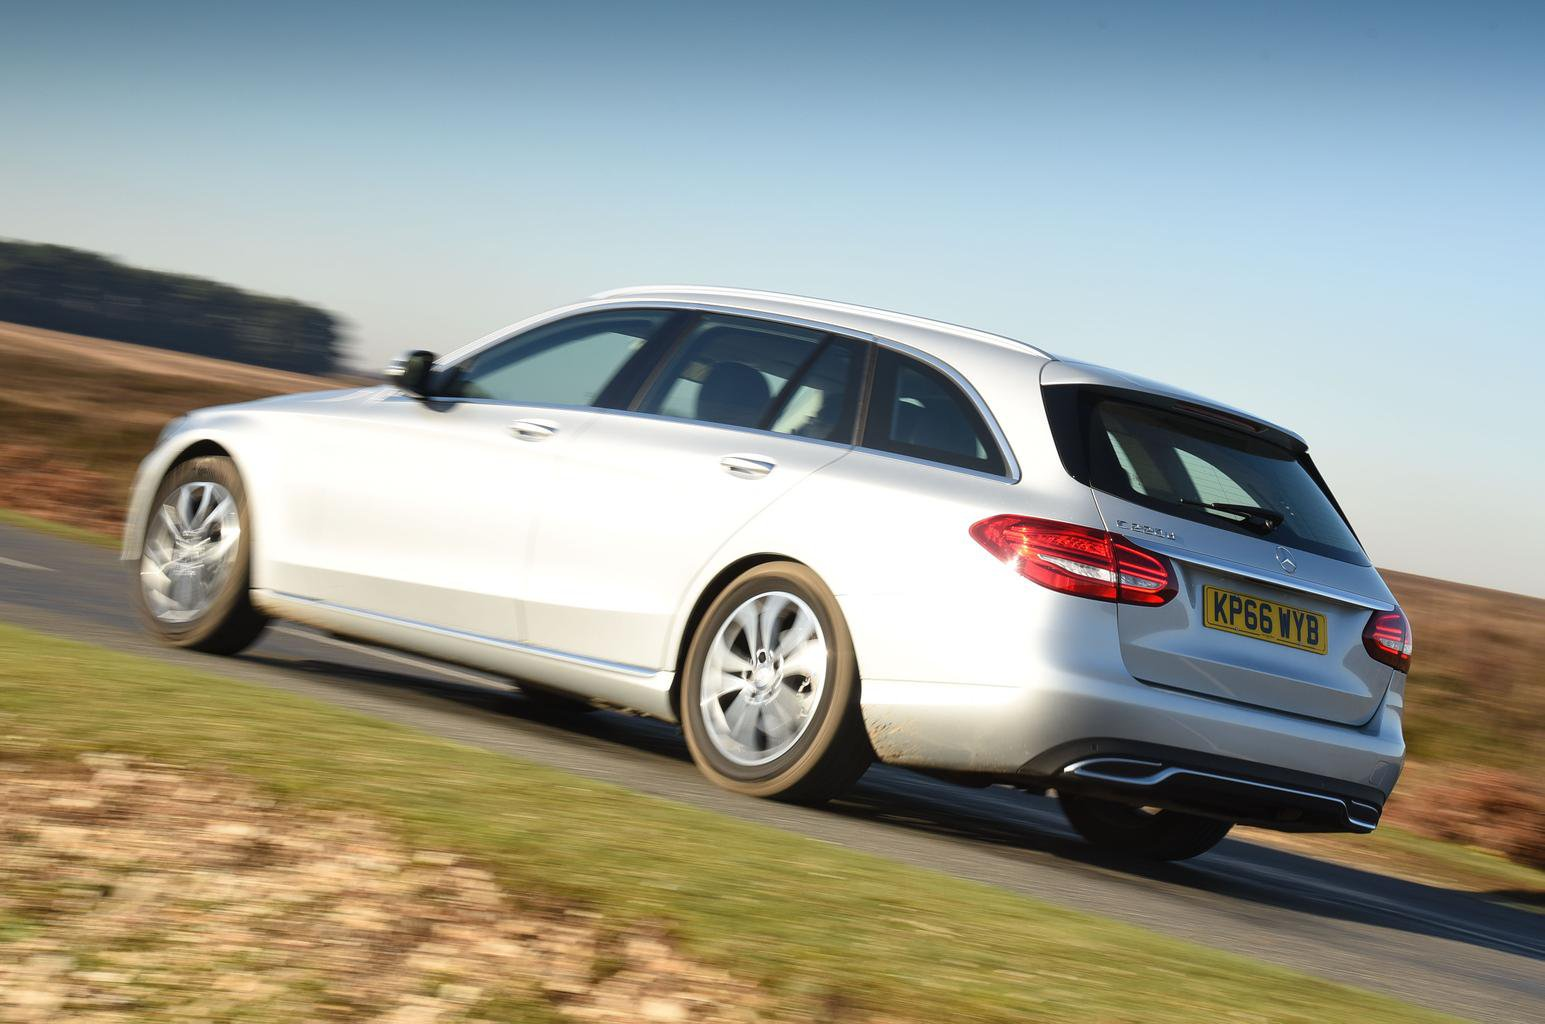 Audi A4 Avant vs BMW 3 Series Touring vs Mercedes C-Class Estate